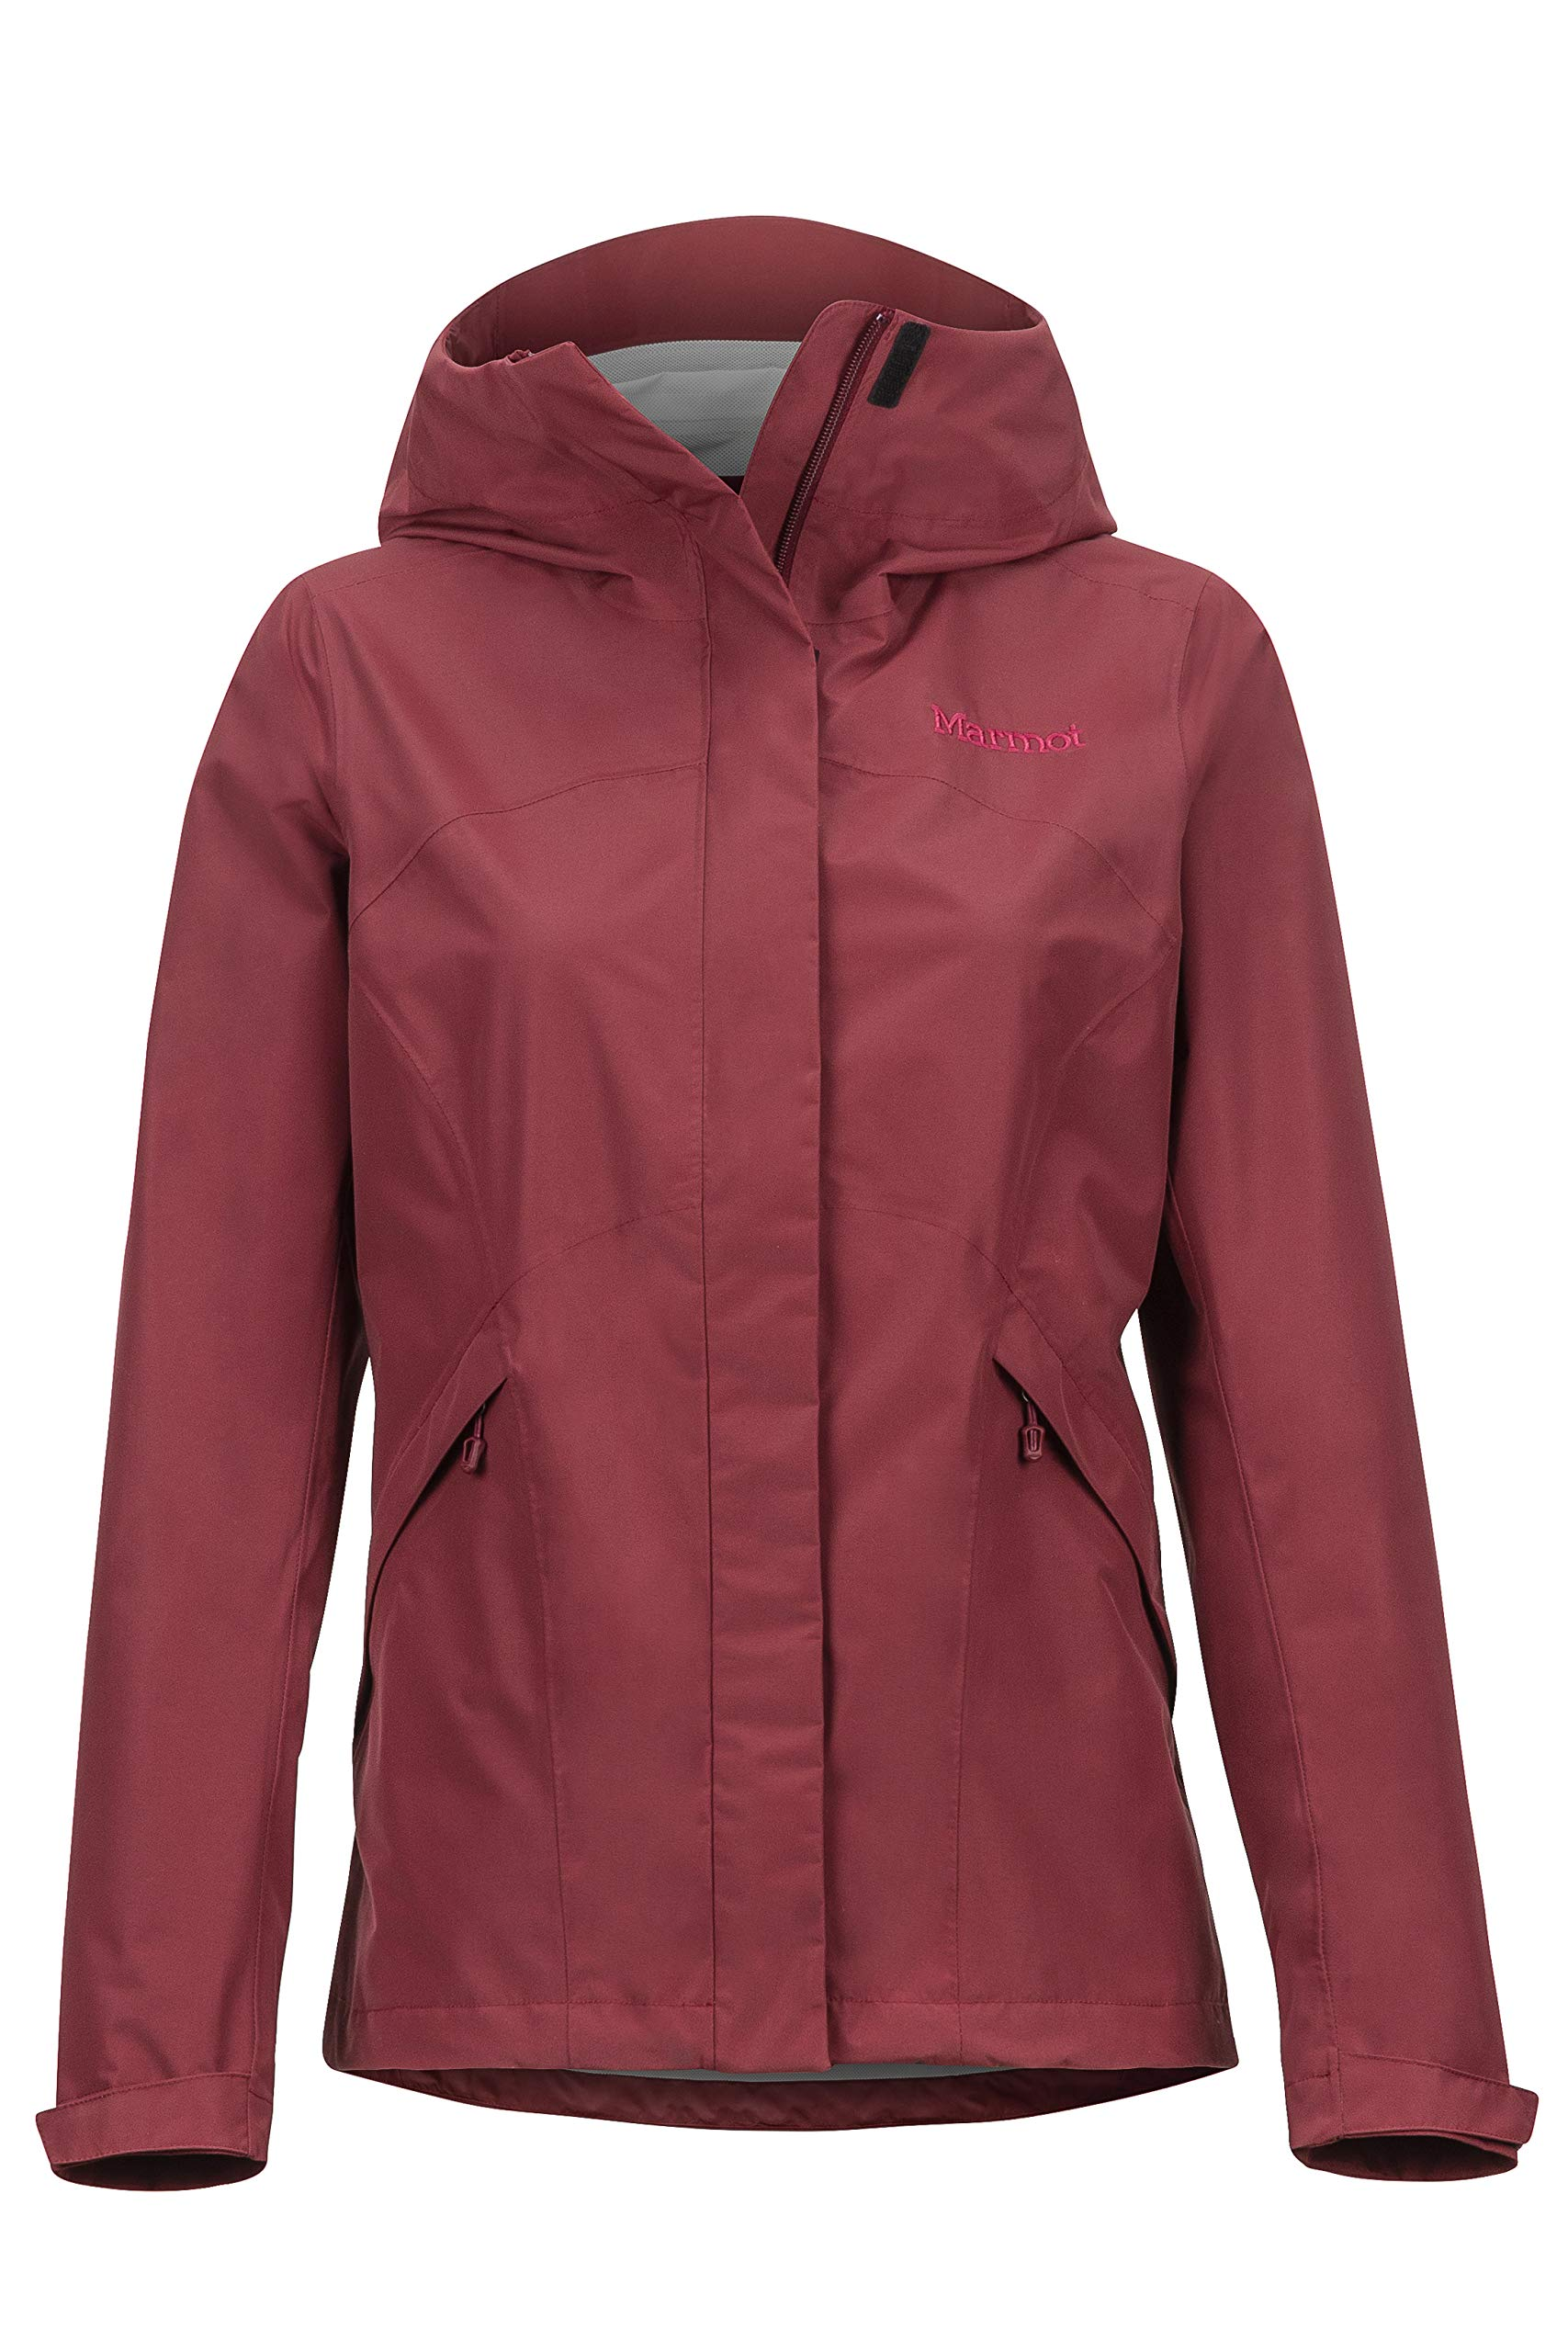 81Y6wuBUGpL - Marmot Women's Phoenix Jacket, Hardshell Rain Jacket, Ultralight Raincoat, Windproof, Waterproof, Breathable